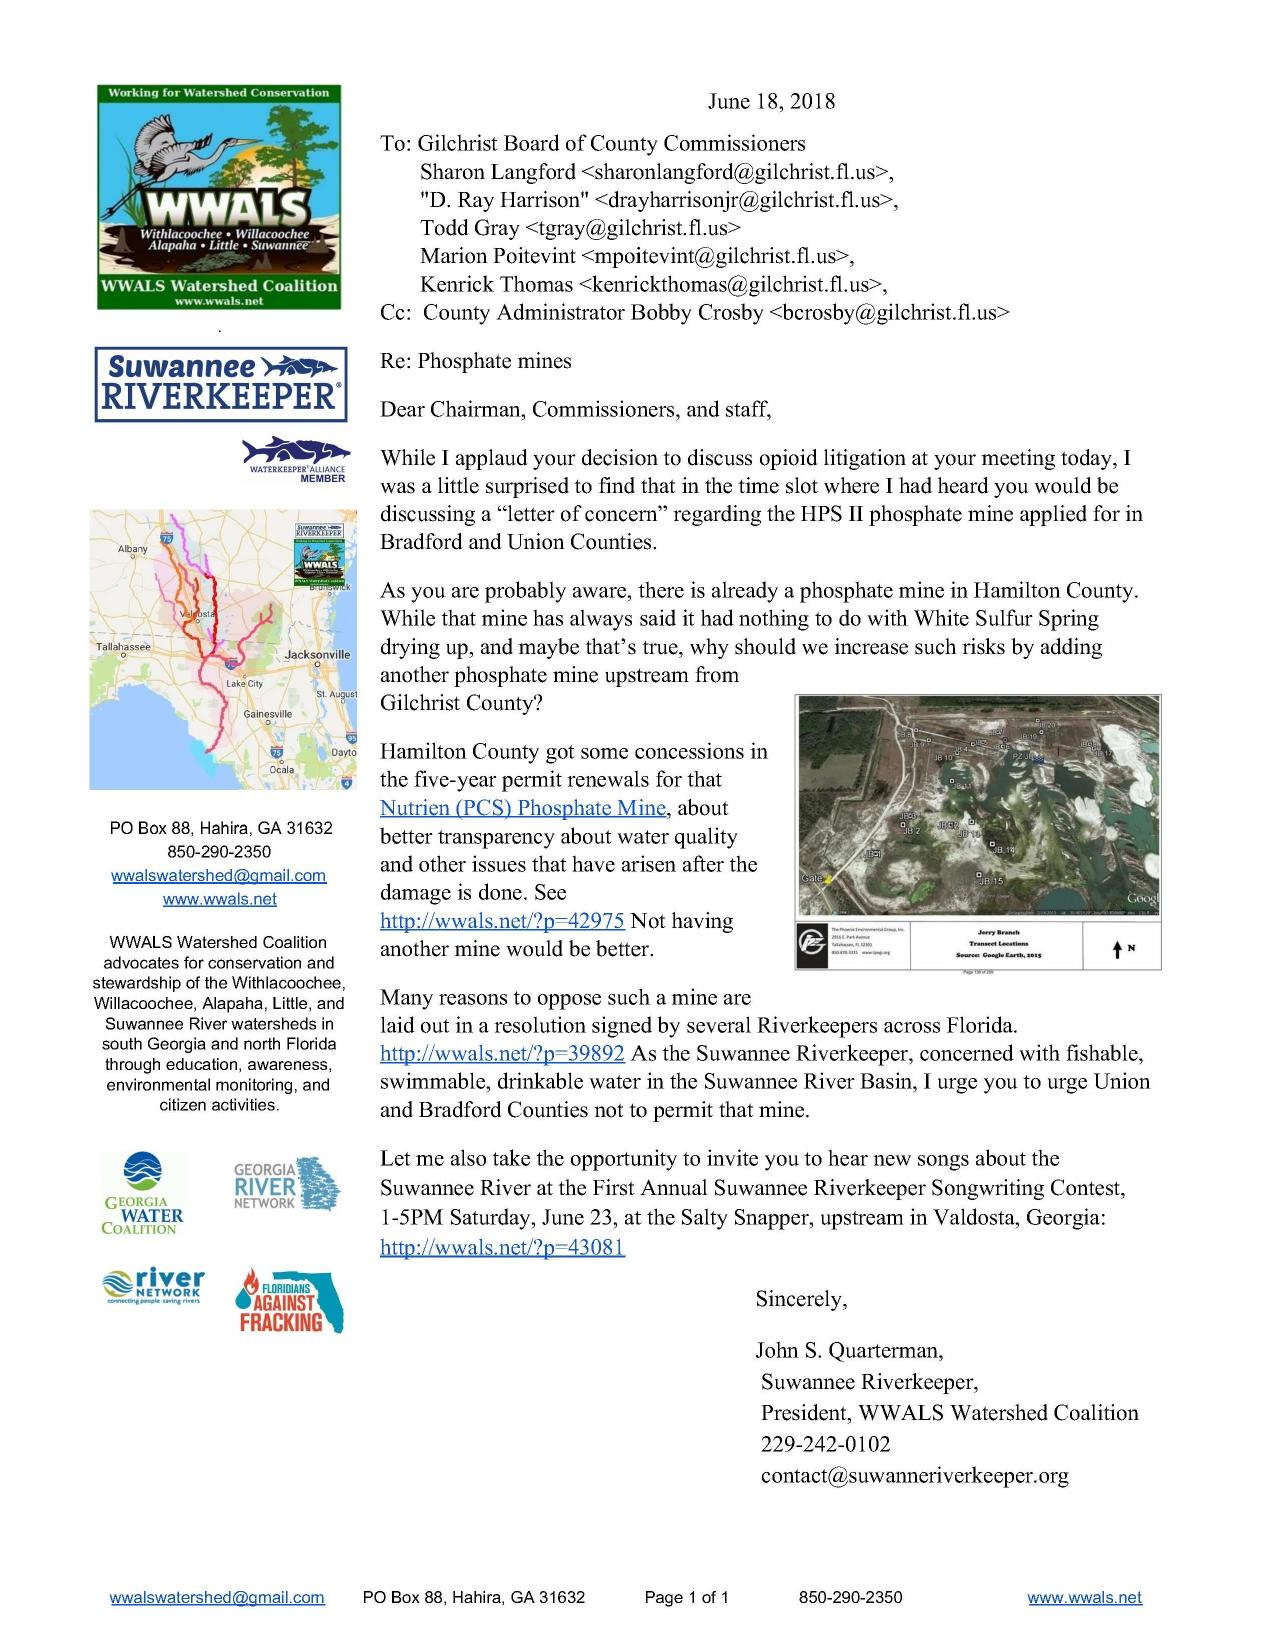 1275x1651 I urge you to urge Union and Bradford Counties not to permit that mine., Letter, in WWALS to Gilchrist County Re: Phosphate Mines, by John S. Quarterman, for WWALS.net, 18 June 2018